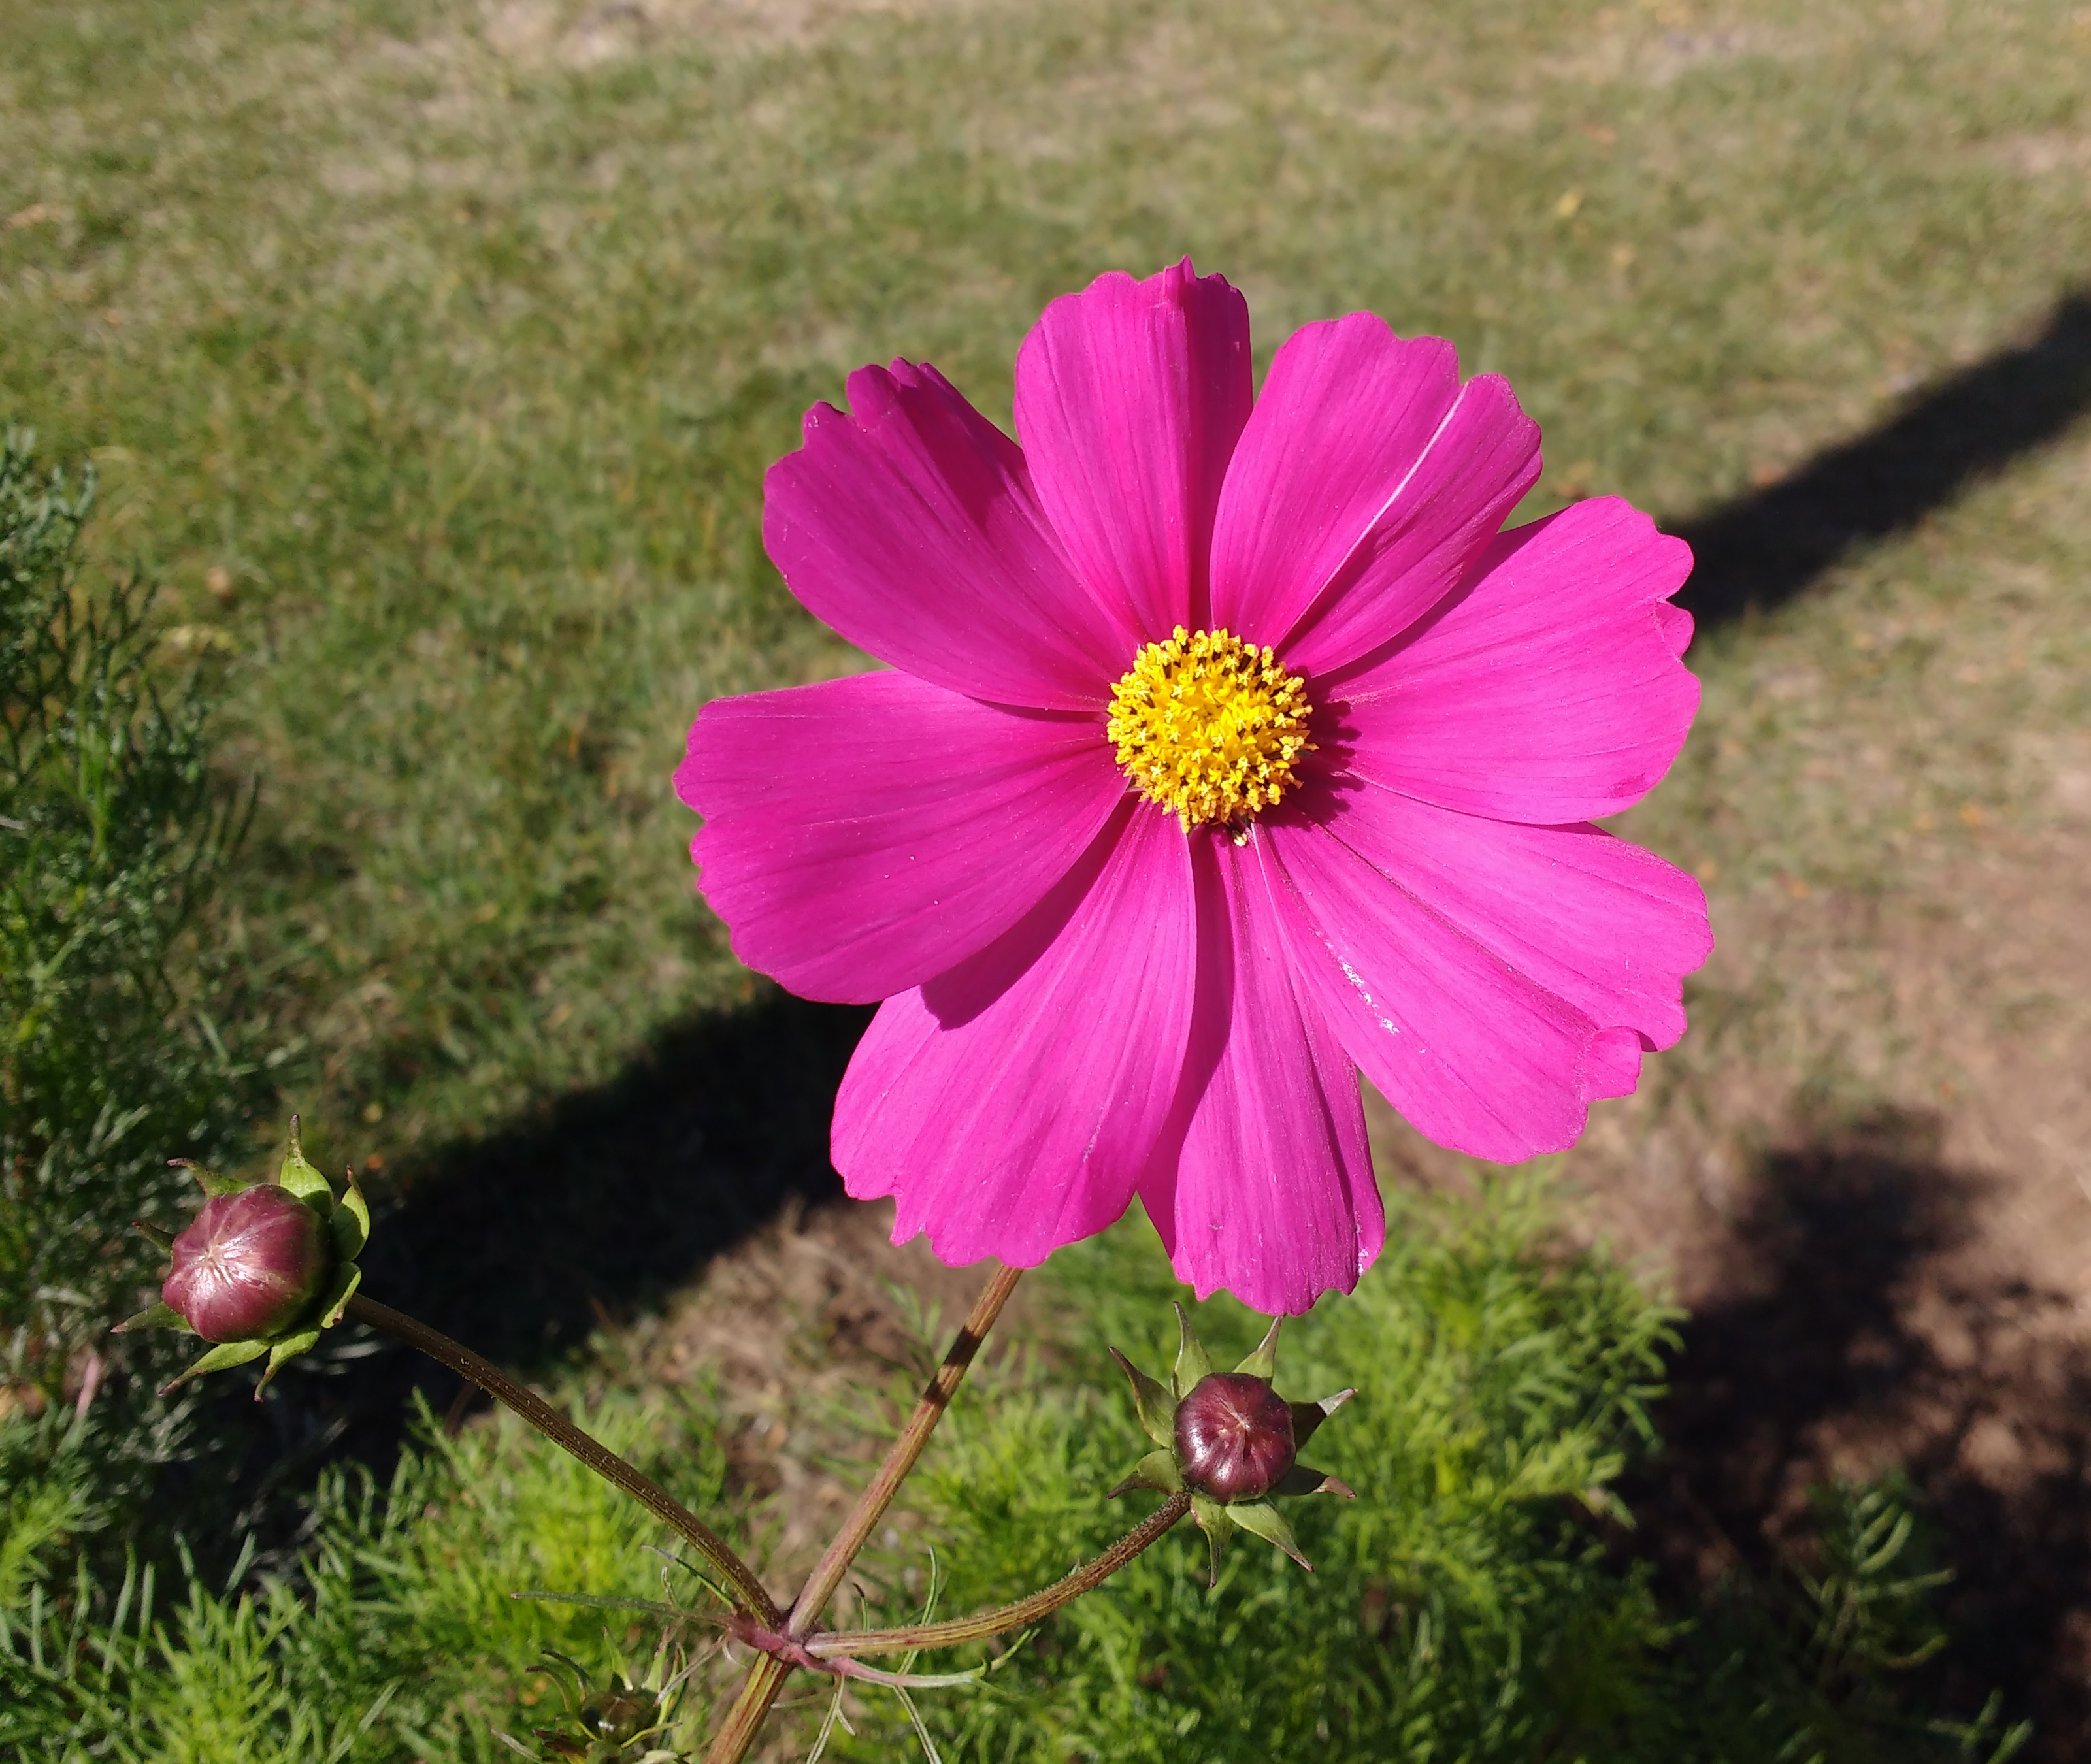 Pink cosmos flower picture free photograph photos public domain click here to download full resolution image mightylinksfo Image collections